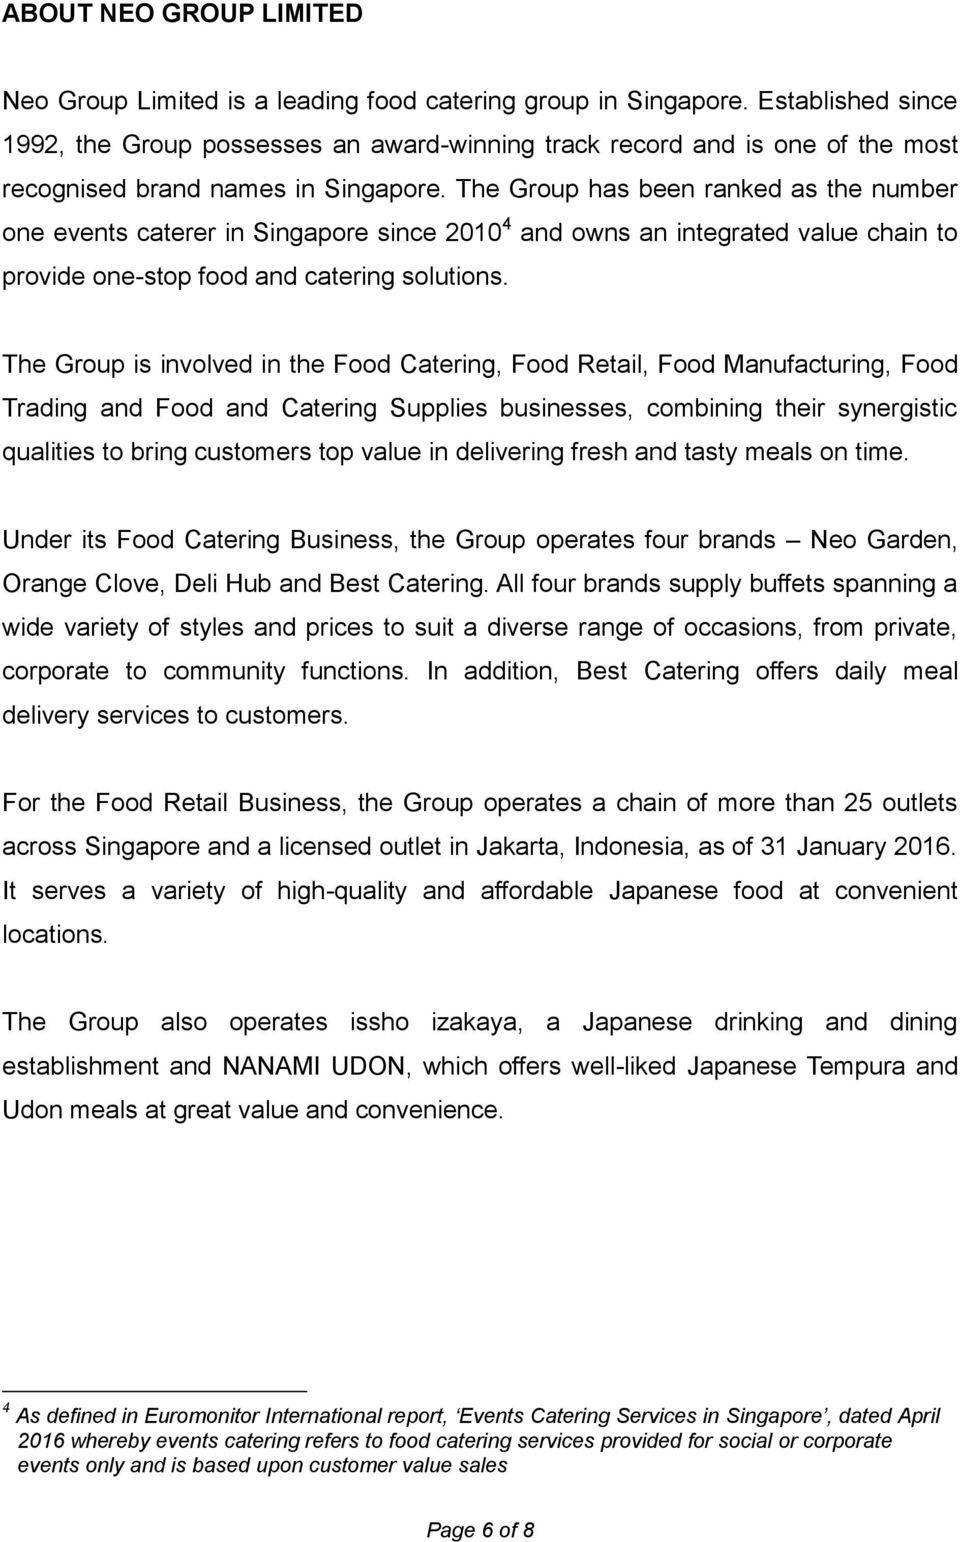 euromonitor international food japan filetype pdf